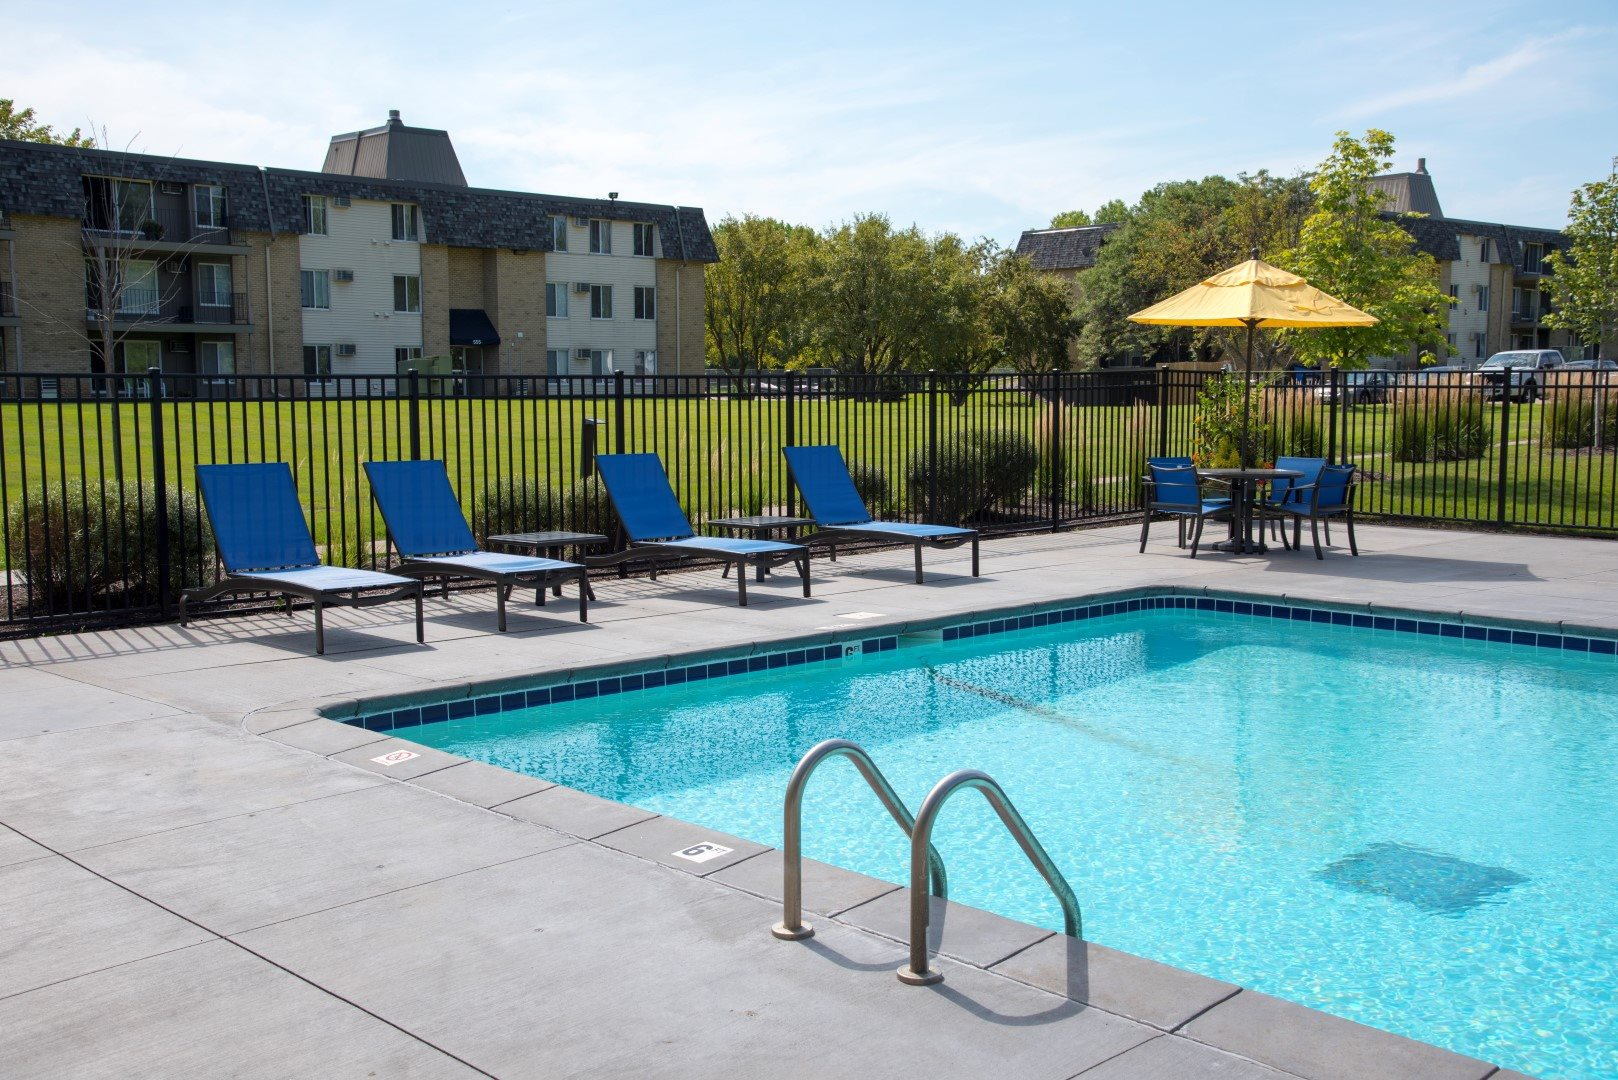 Pool area at Shorview Grand best apartments in Shoreview